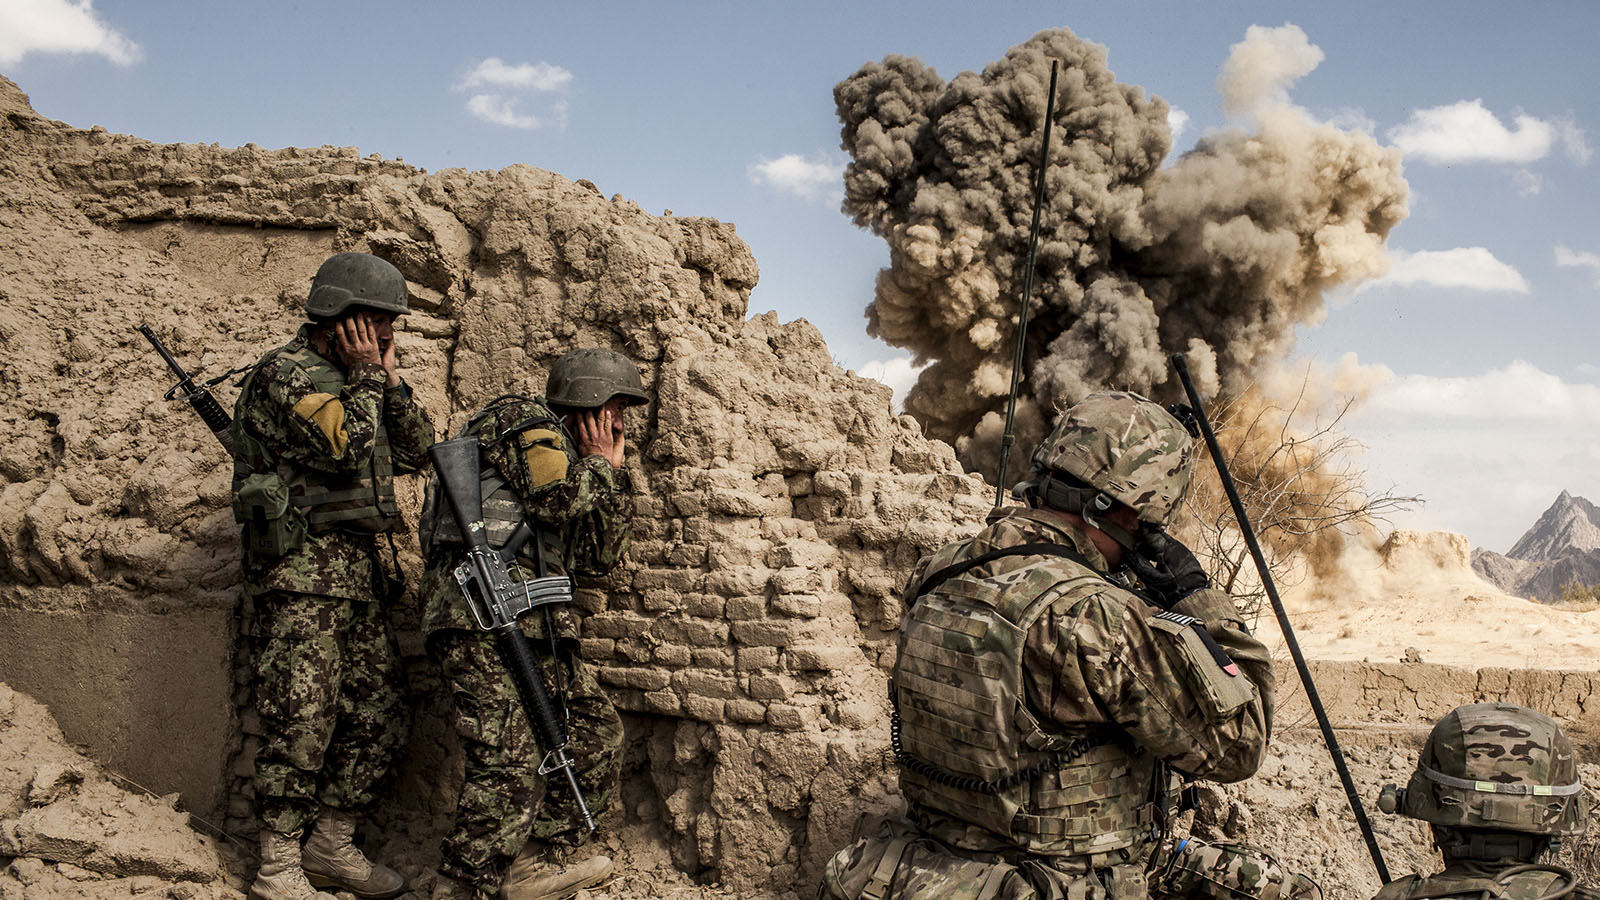 Afghan National Army soldiers, left, and American soldiers from Bravo Company, 3rd Battalion, 1st Armored Division, destroy a Taliban firing position in the Layadira village of Kandahar province, Afghanistan, Feb. 14, 2013. As American troops prepare to speed up their 2014 withdrawal, it is clear some of it will happen under fire, as Taliban fighters try to strike at departing soldiers. (Bryan Denton/New York Times/Getty Images)